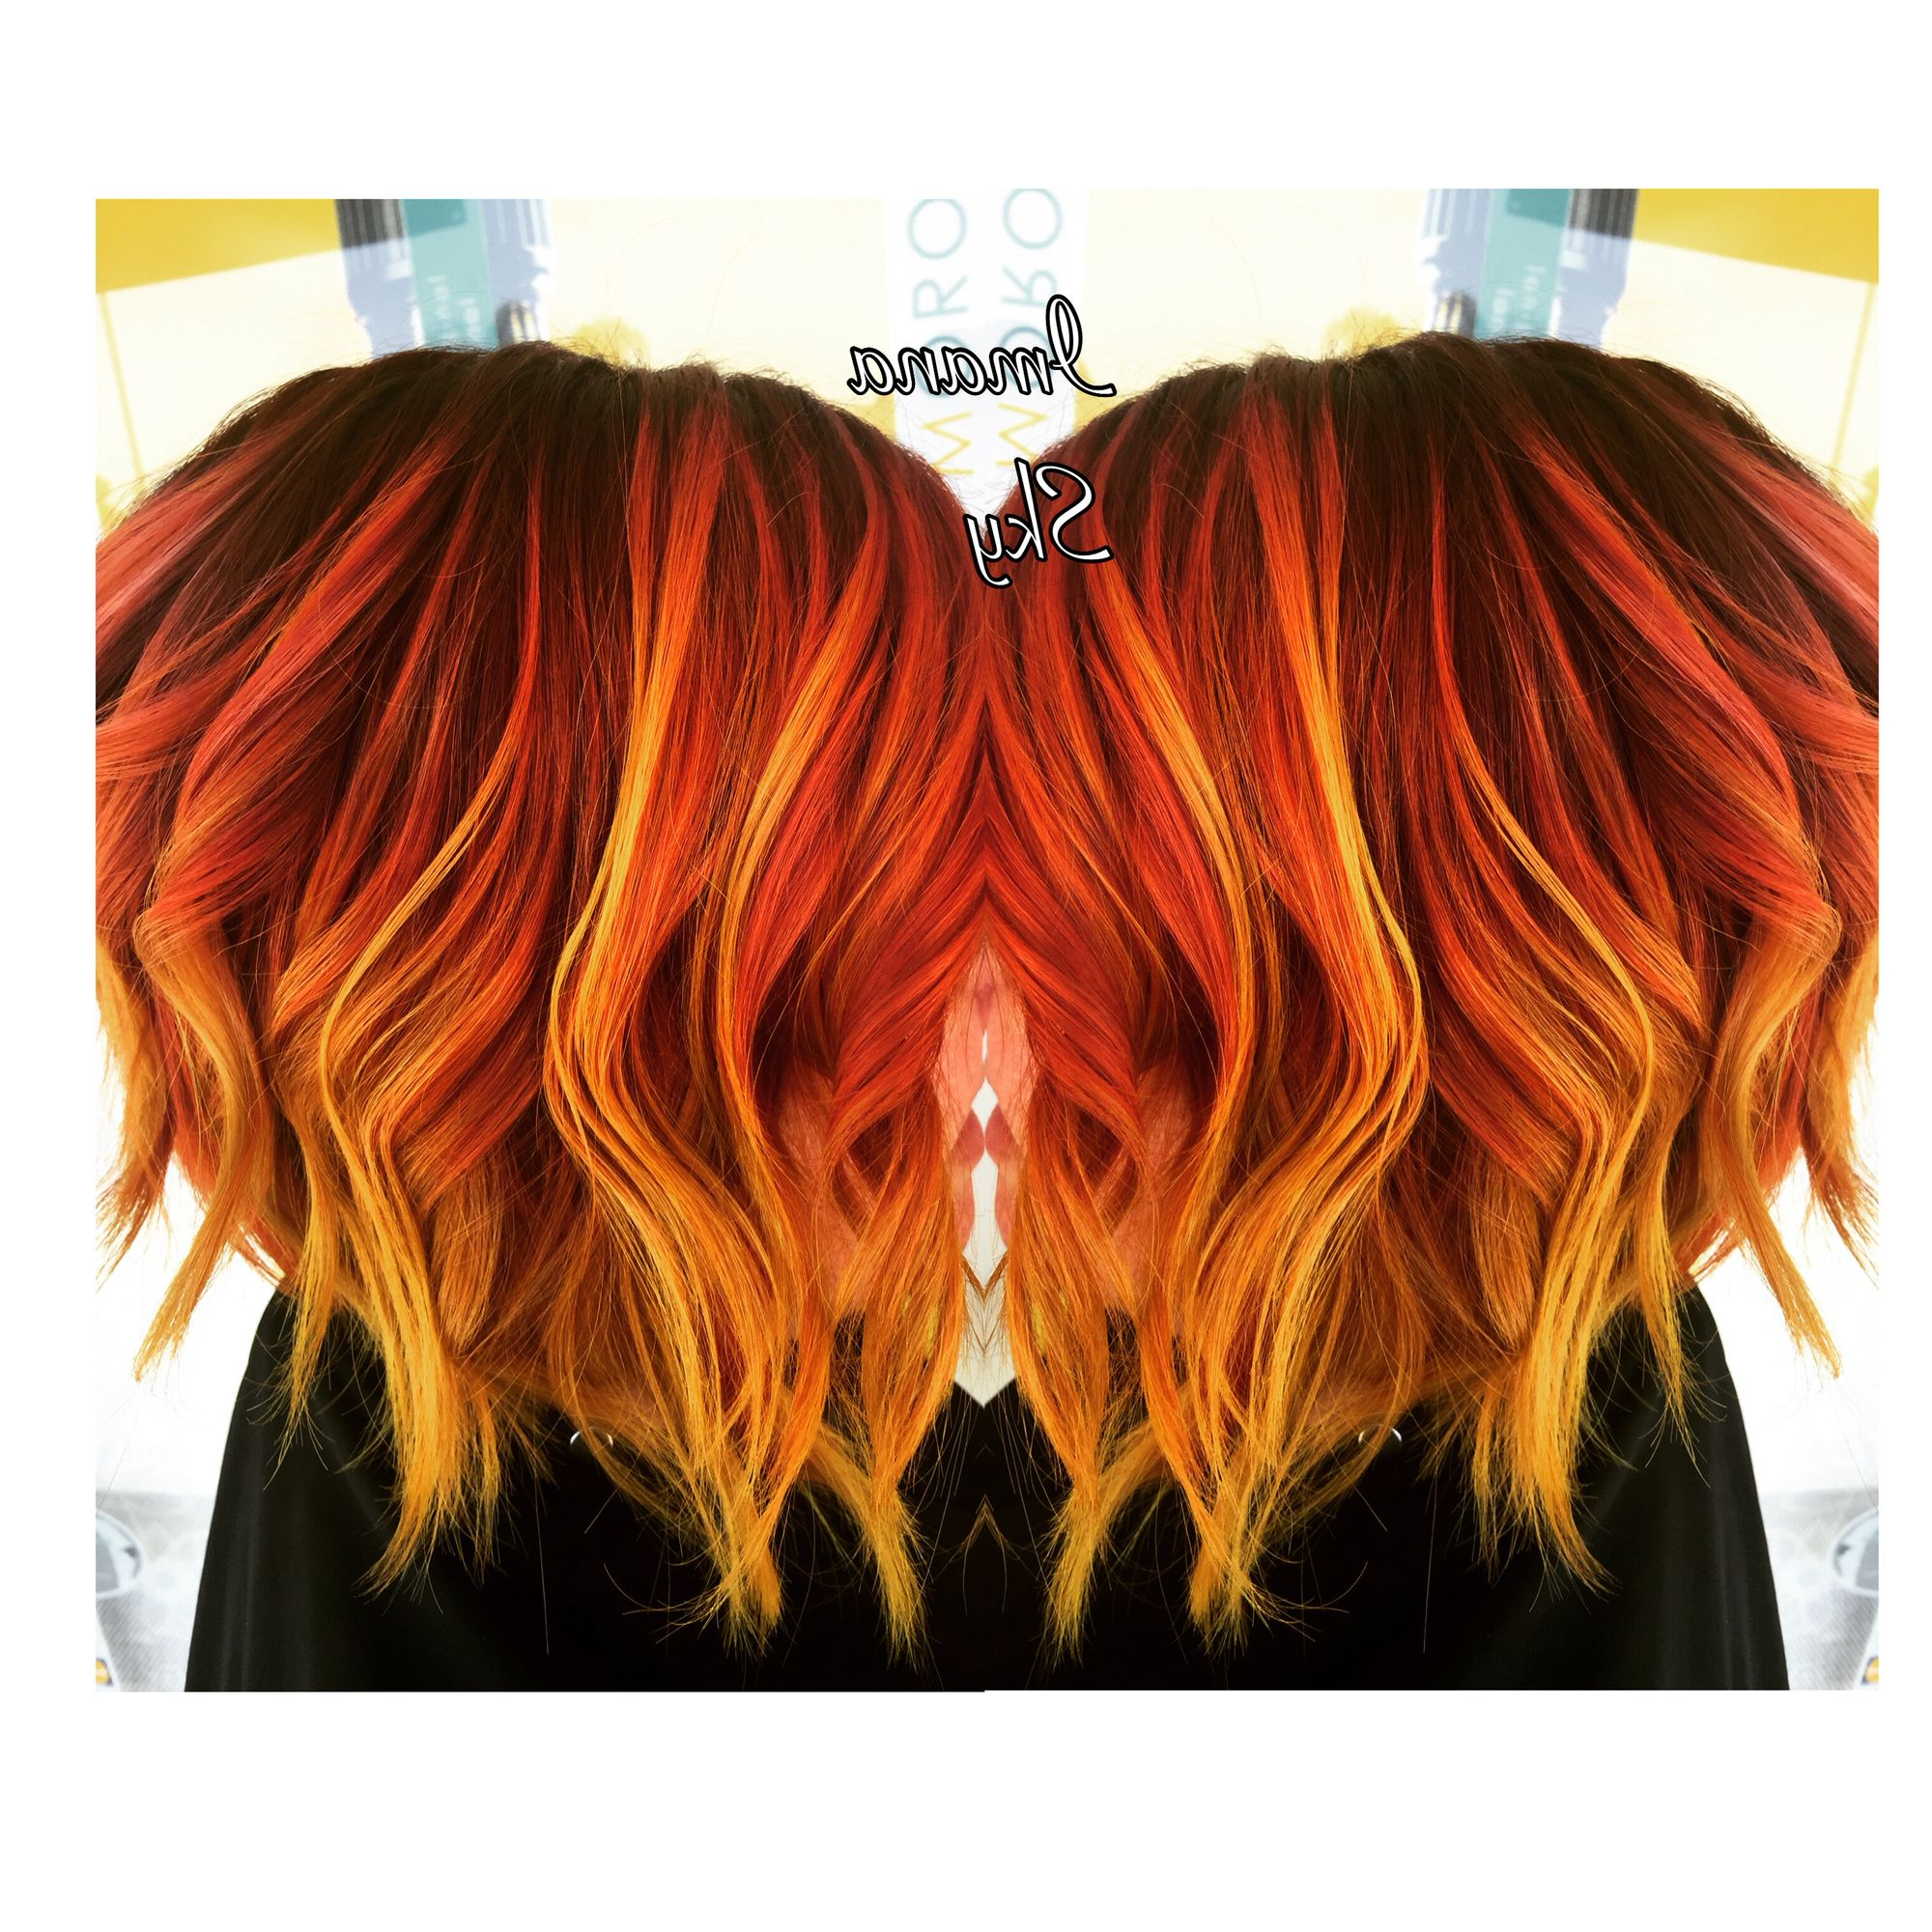 Purple Roots To Red Orange And Neon Yellow Flame /sunset Balayage Pertaining To Burnt Orange Bob Hairstyles With Highlights (View 15 of 20)